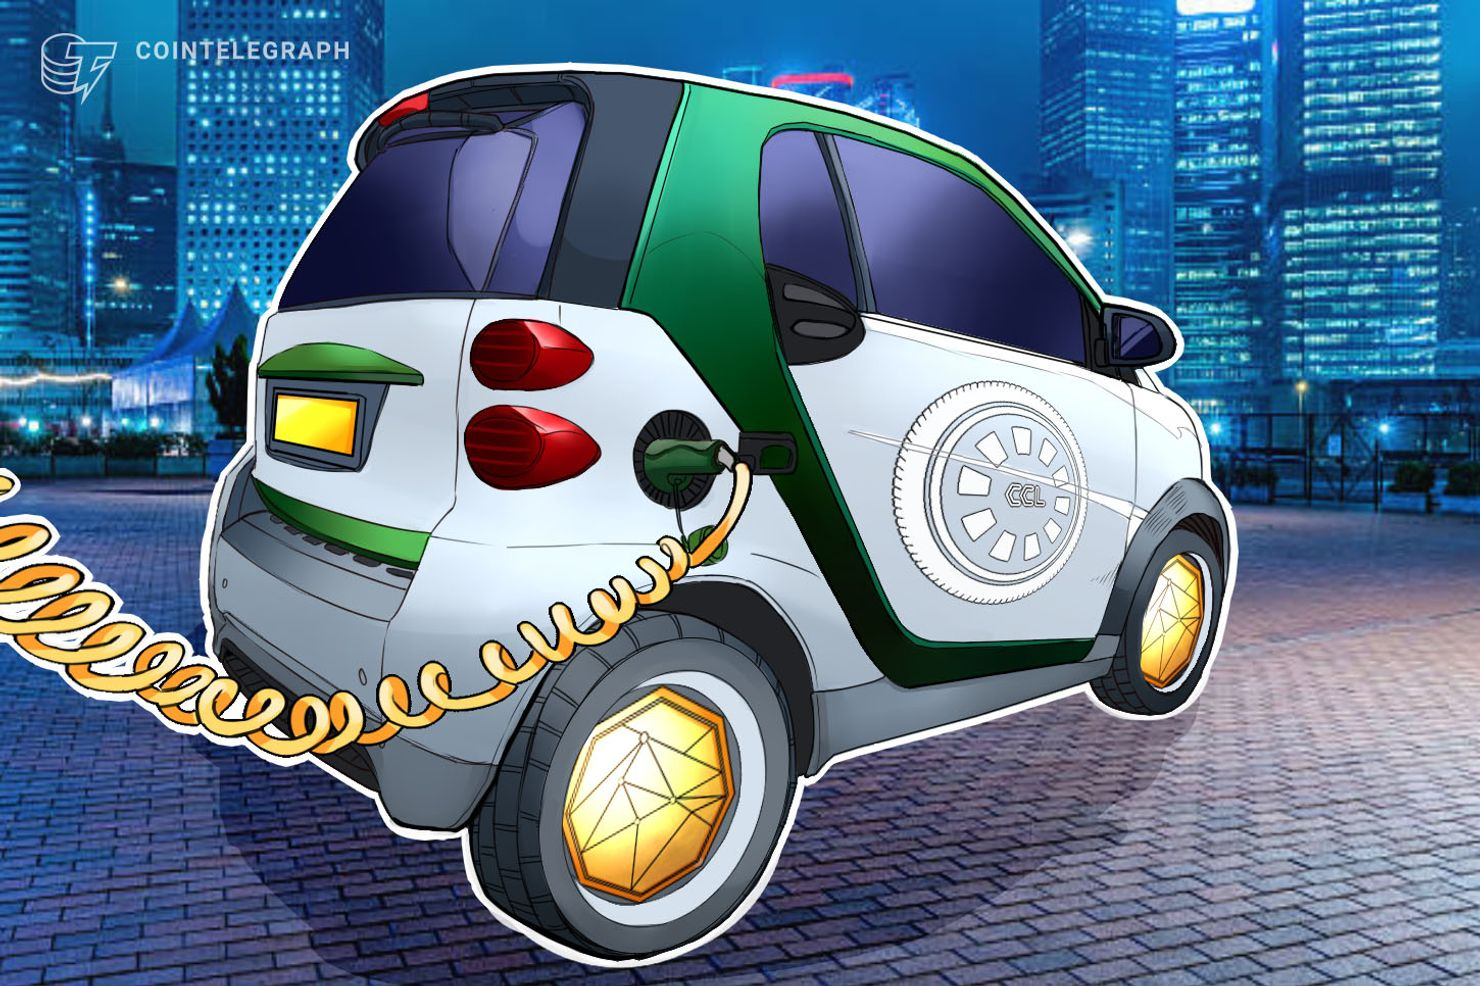 Startup Launches Blockchain Powered Electric Vehicles That Mine Cryptocurrency